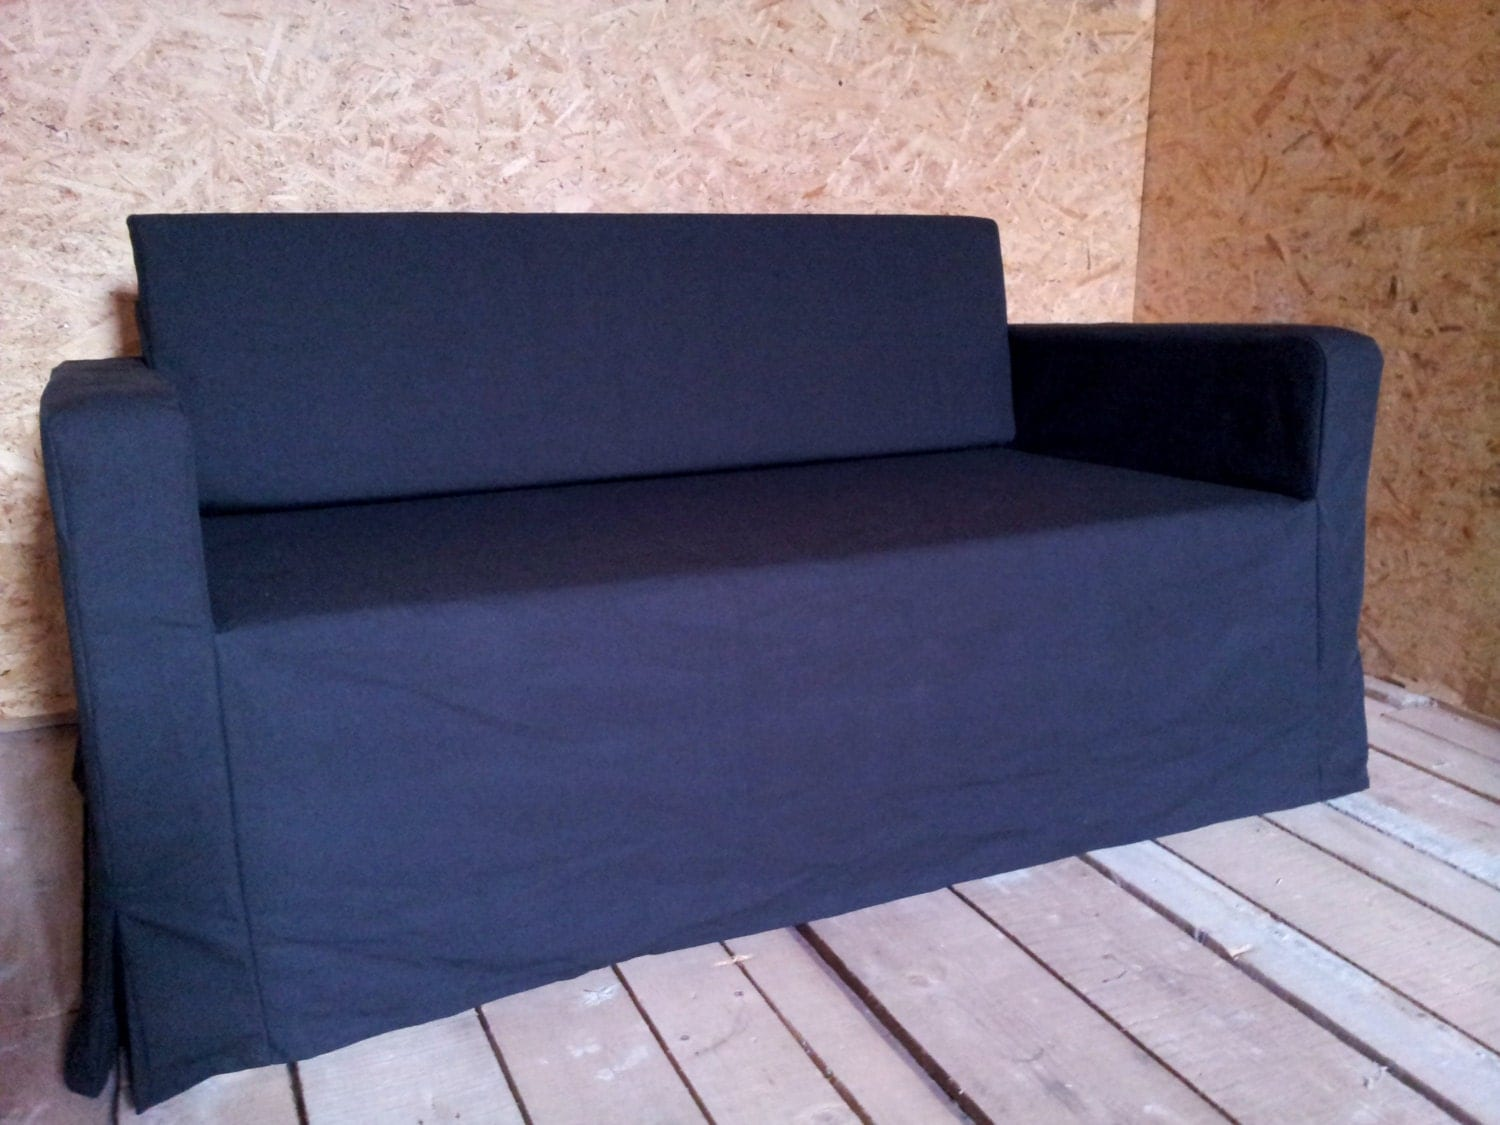 Slipcover For Solsta Sofa Bed From Ikea Strong By Kustomcovers